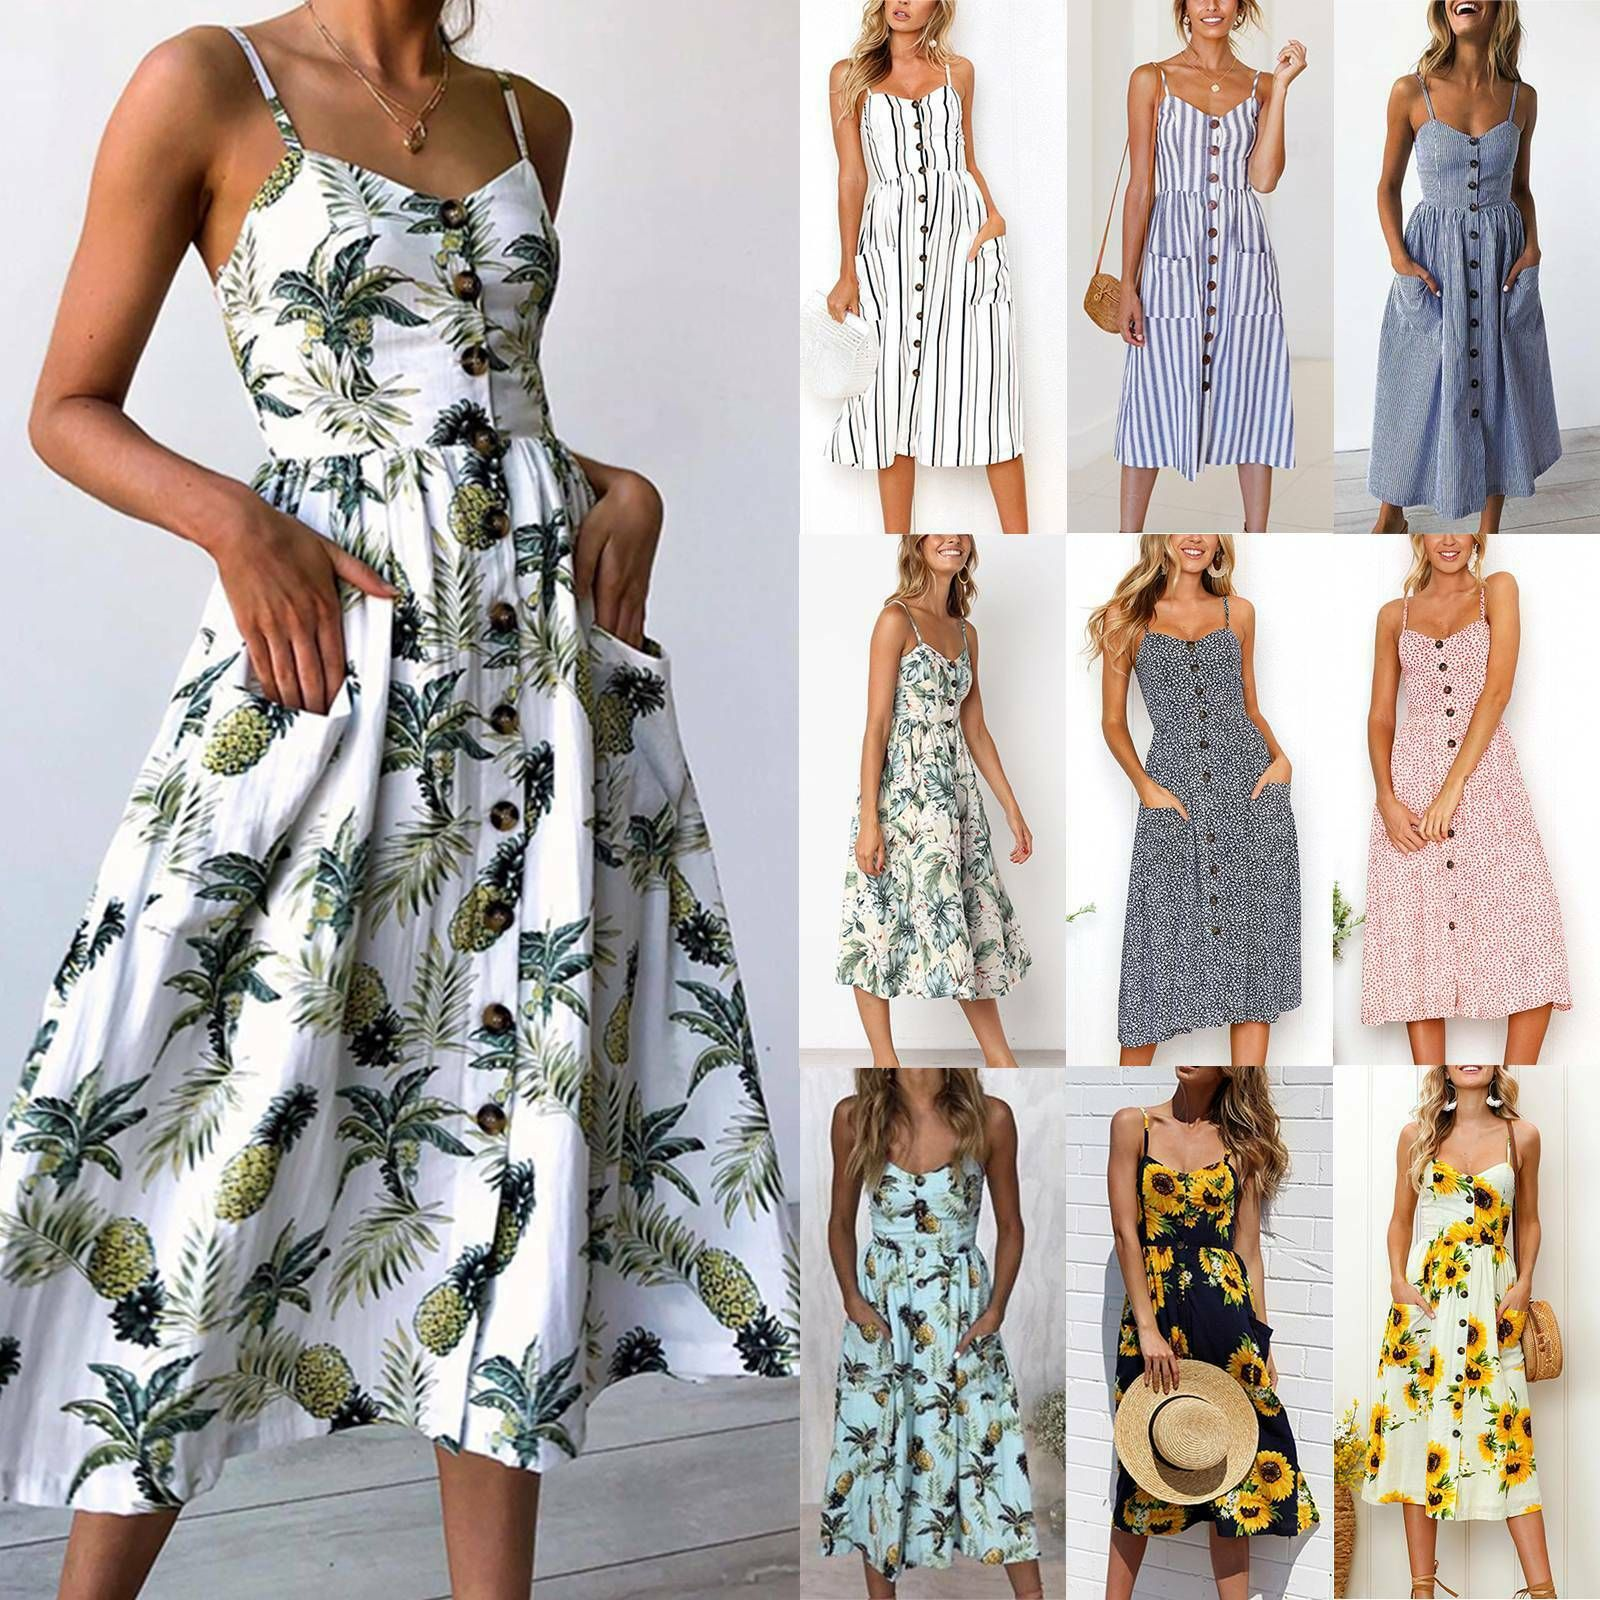 Womens Buttons Floral Beach Sundress Summer Casual Strappy Holiday Party Dress Summer Dresses Ideas Maxi Dress Cocktail Midi Dress Party Midi Dress Summer [ 1600 x 1600 Pixel ]